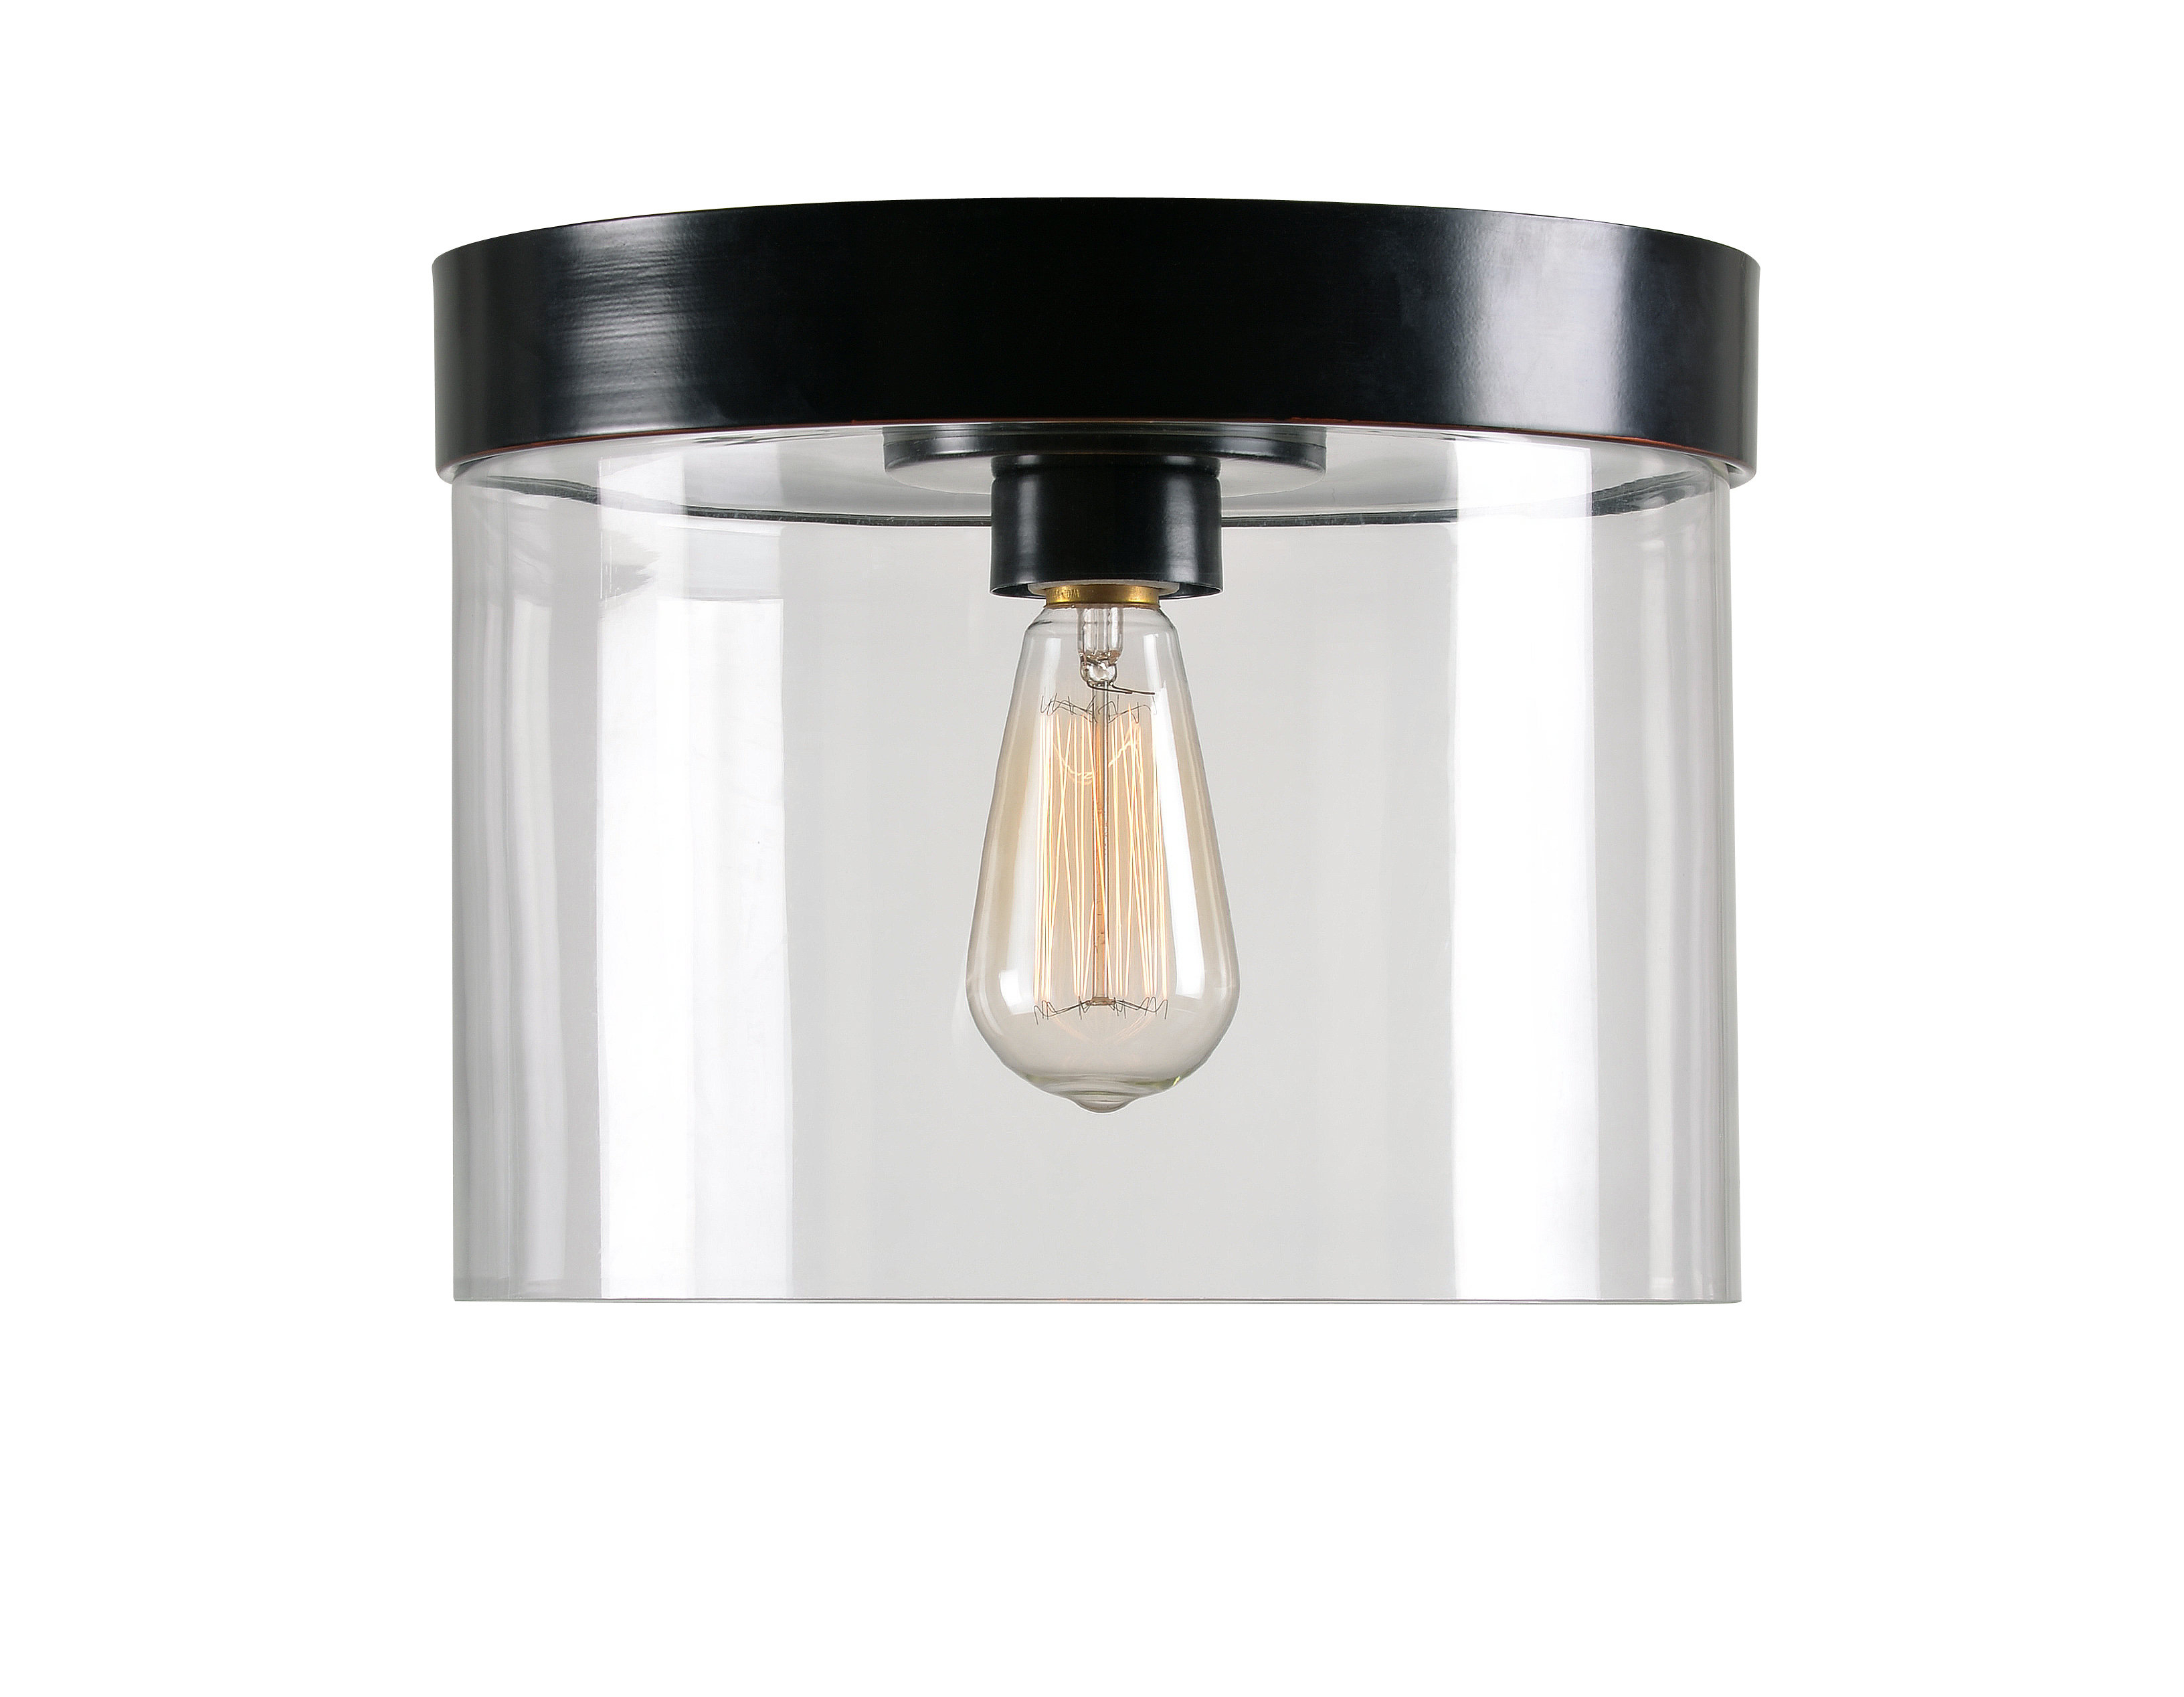 Preferred Clematite 1 Light Single Jar Pendants Inside Clematite 1 Light Flush Mount & Reviews (View 18 of 20)